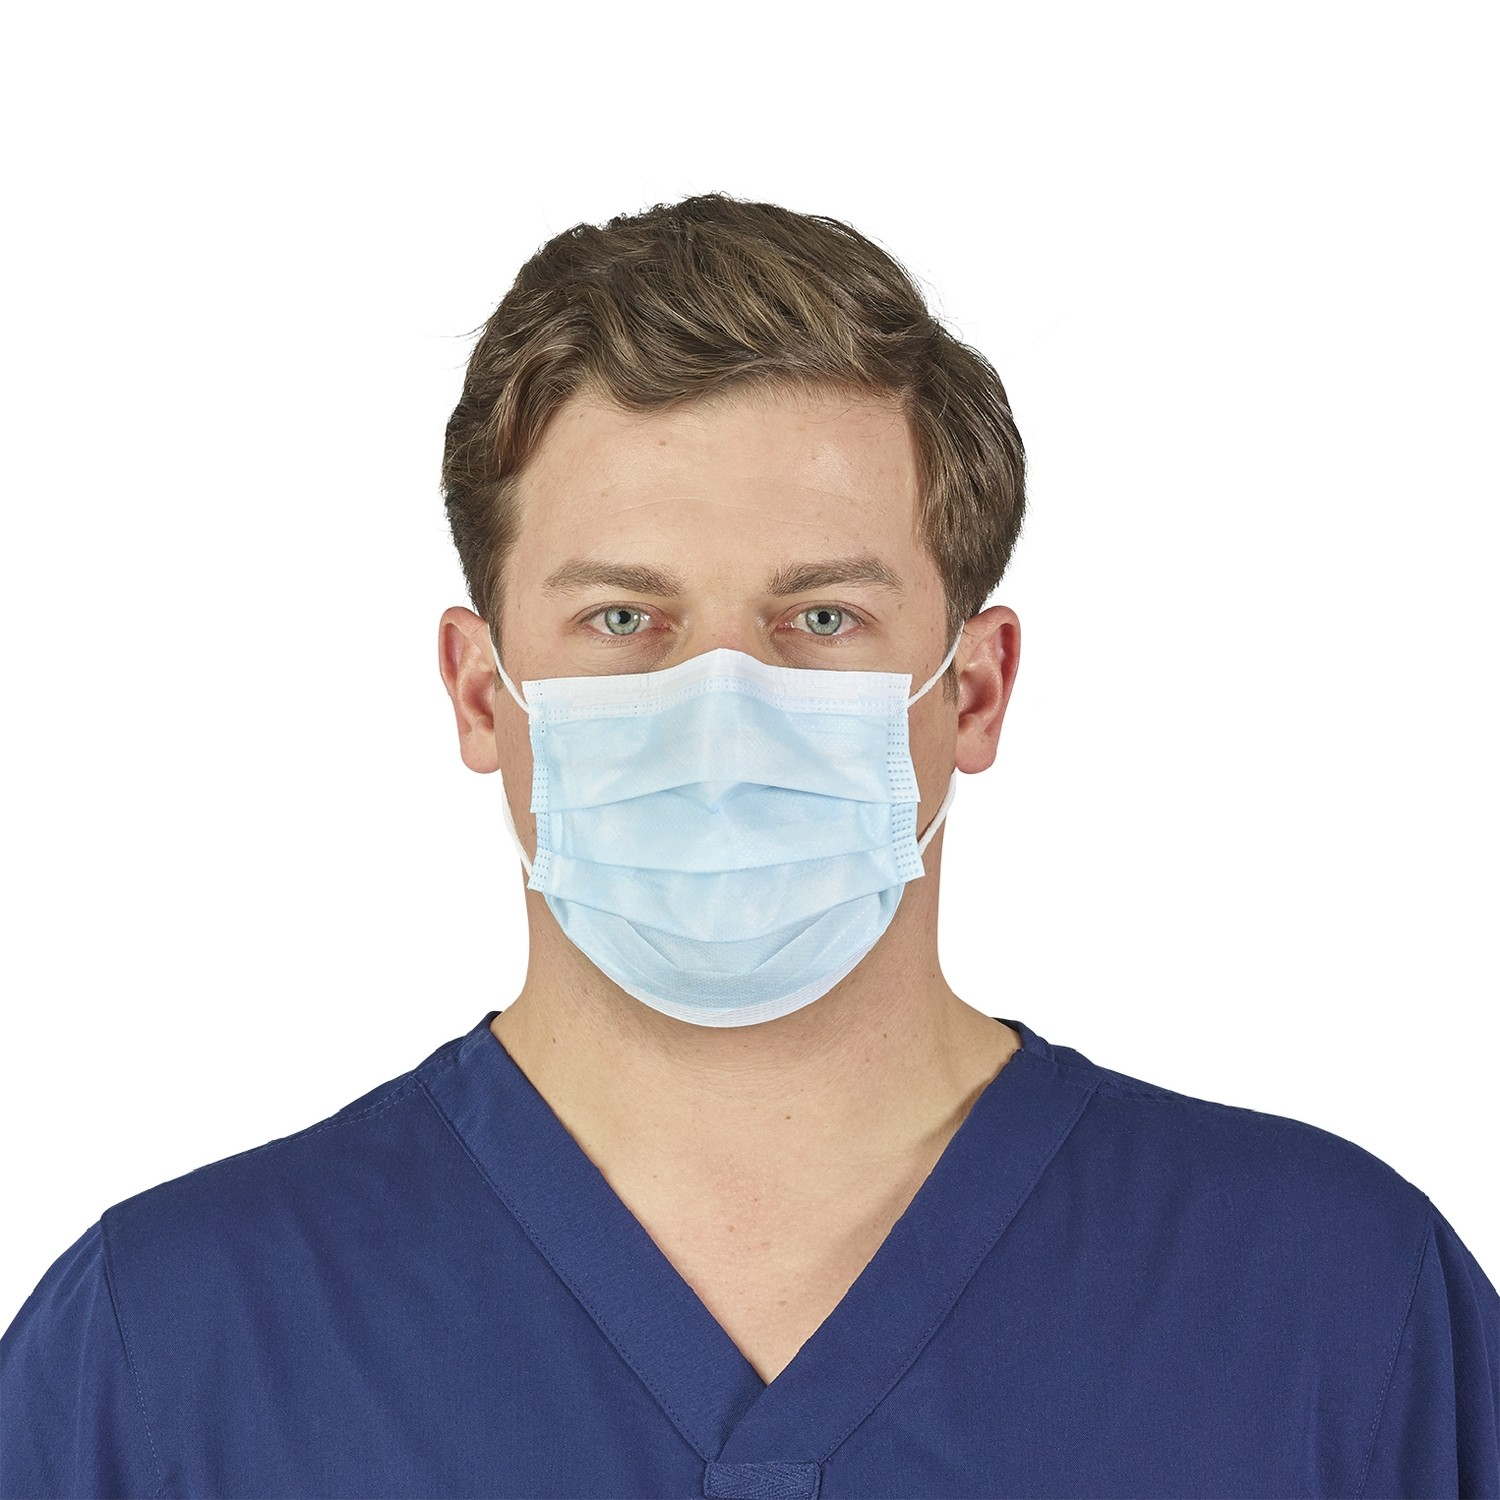 HALYARD* Blue Level 2 Procedure Mask with Earloops - Face Masks & N95 Respirators - Facial ...